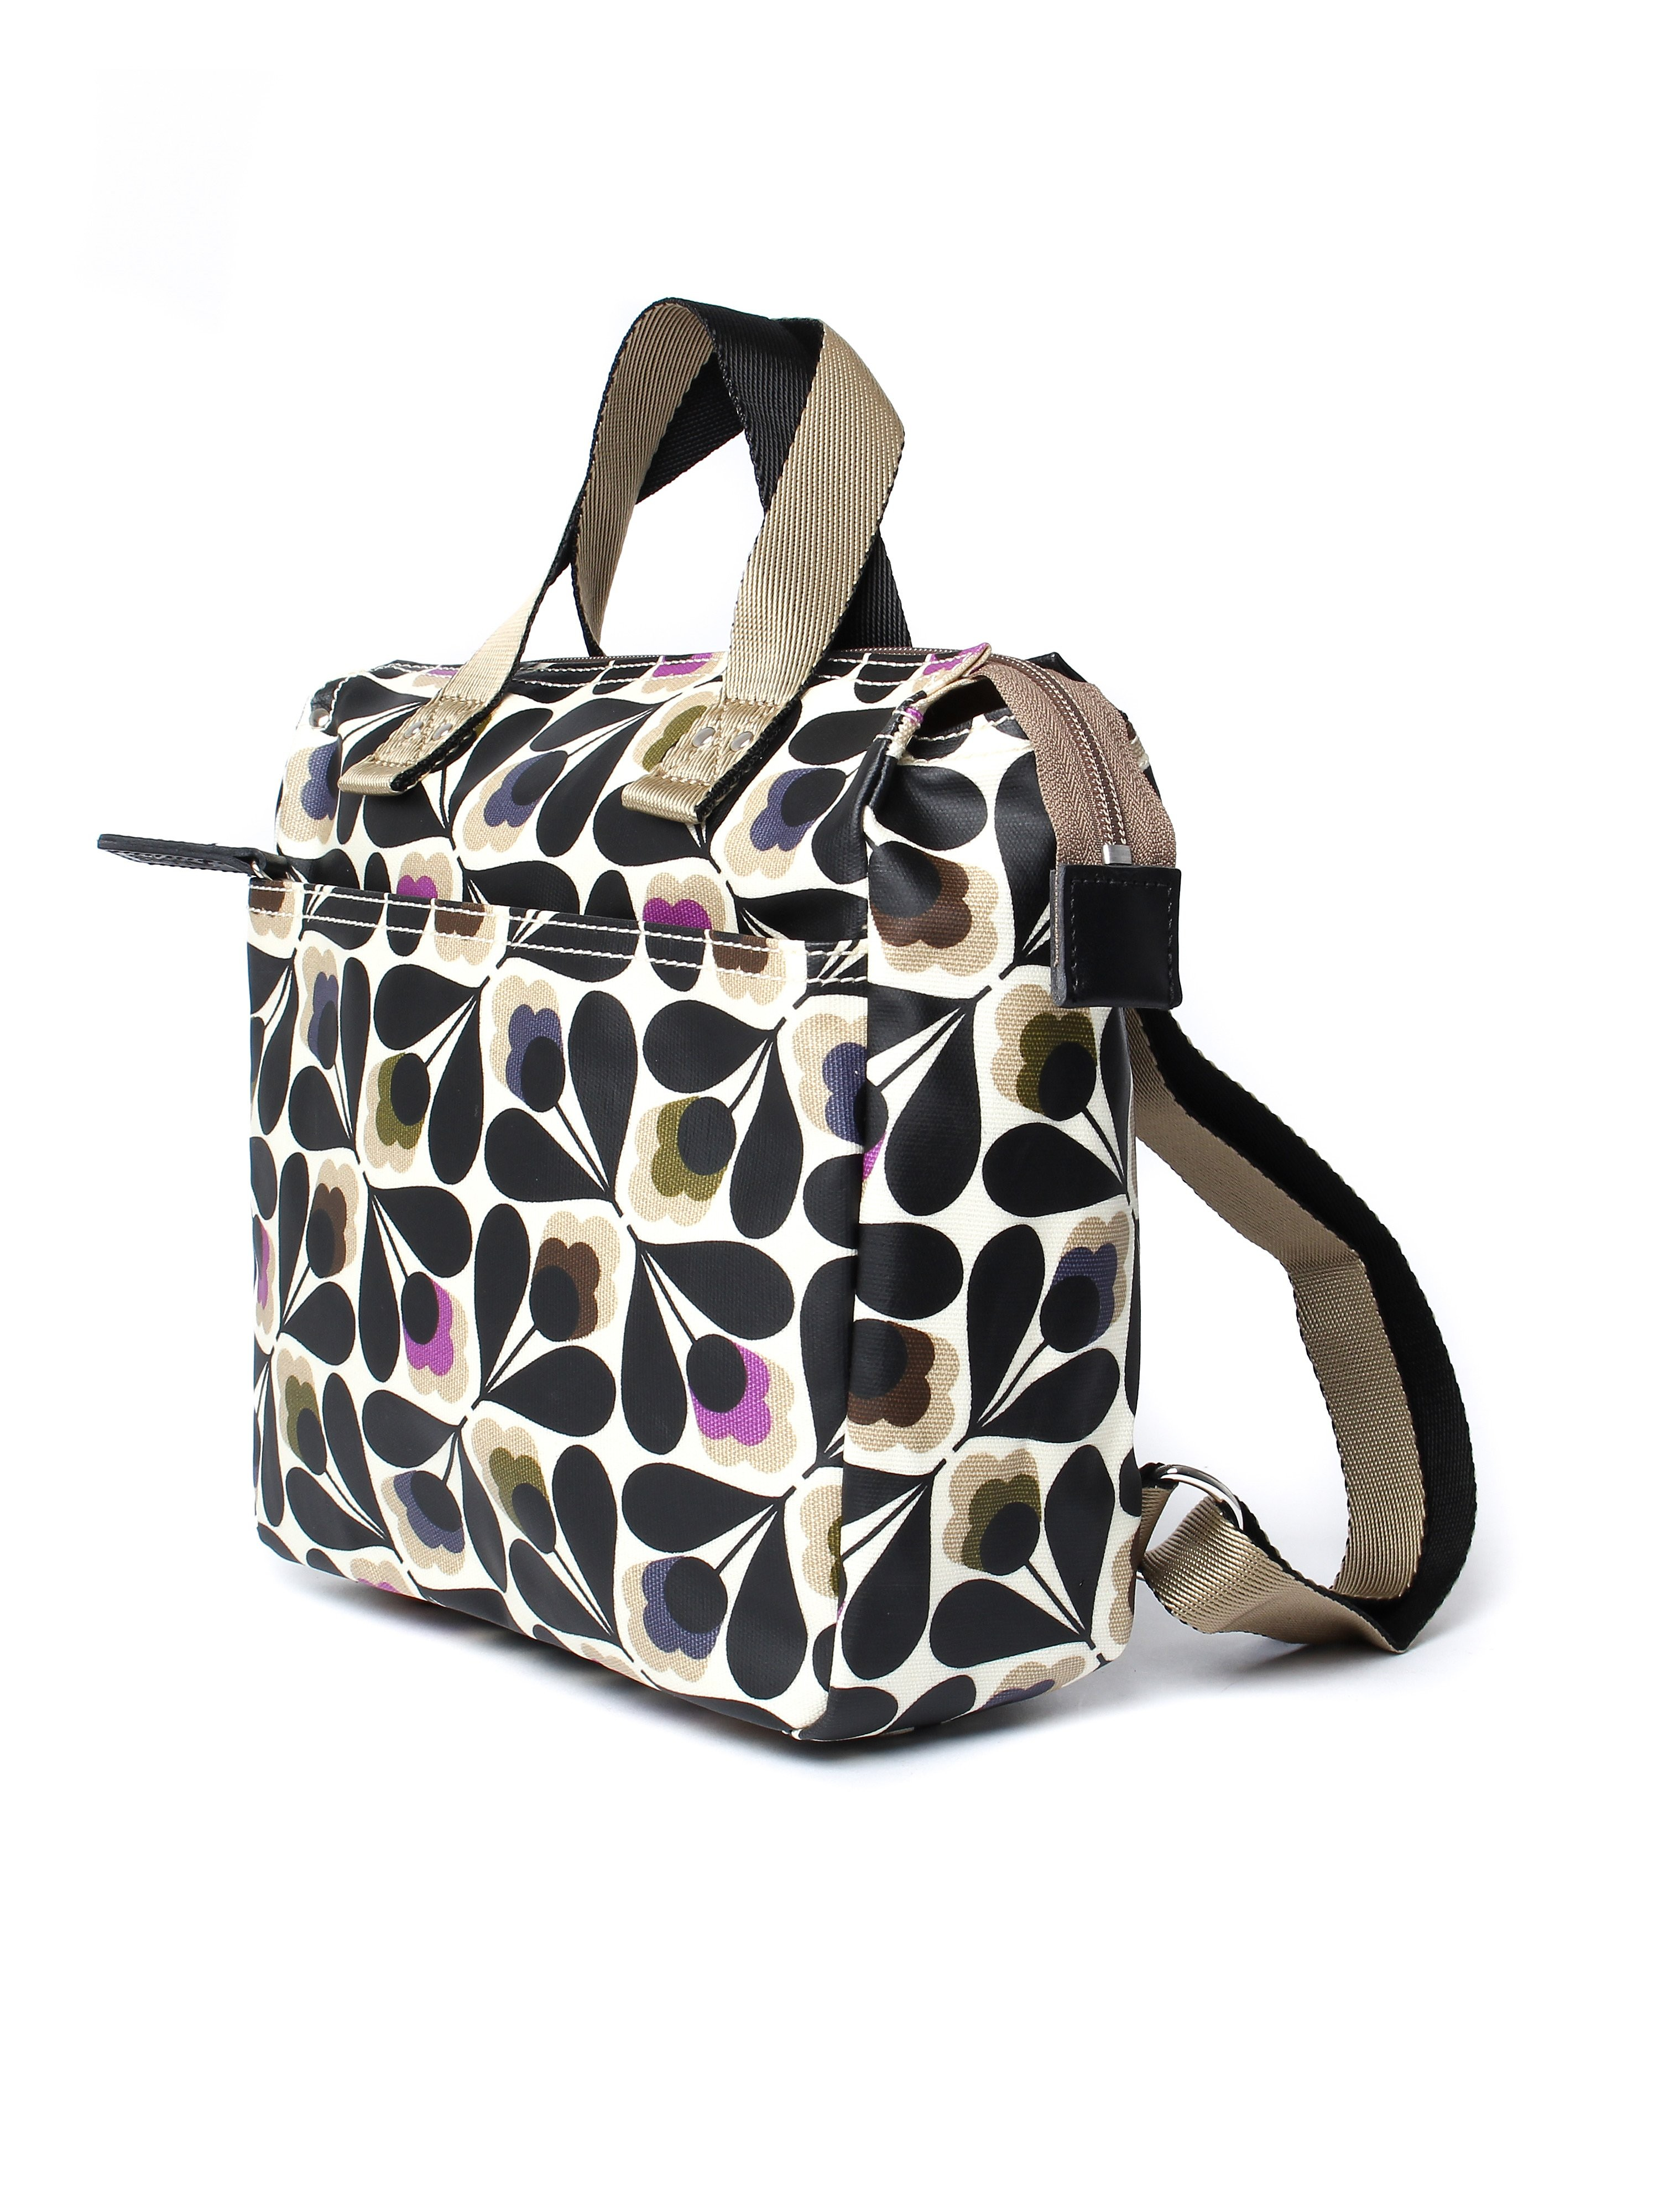 Orla Kiely Women's Backpack Tote - Multi Sycamore Seed